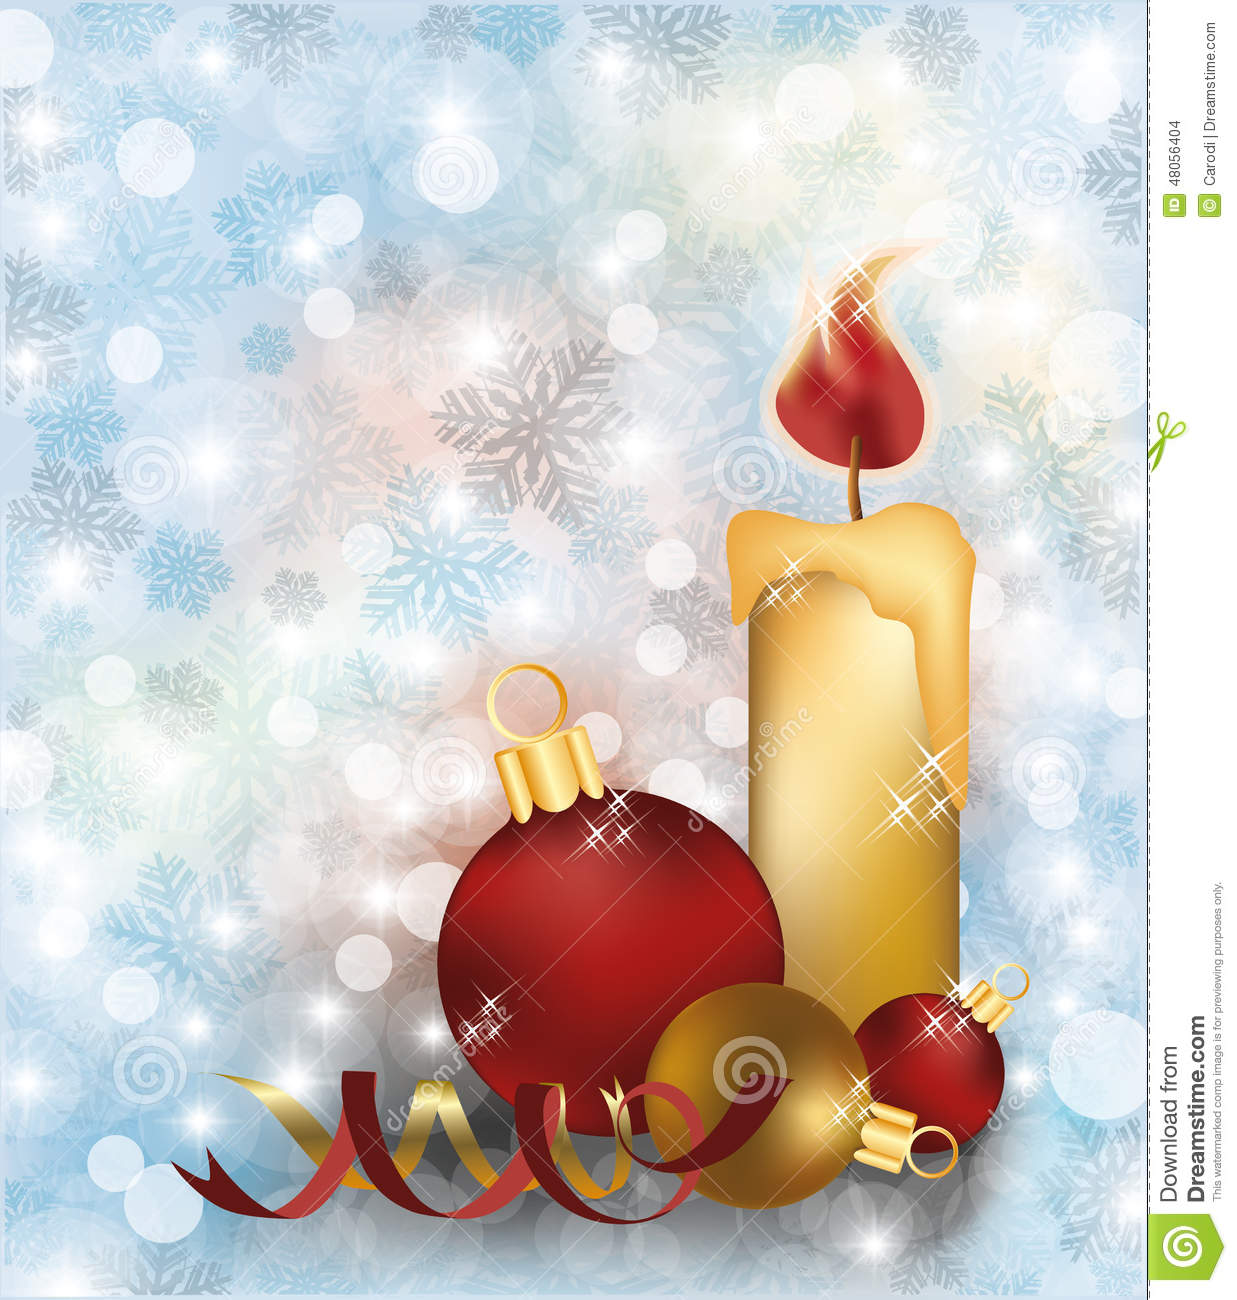 merry christmas and happy new year wallpaper stock vector